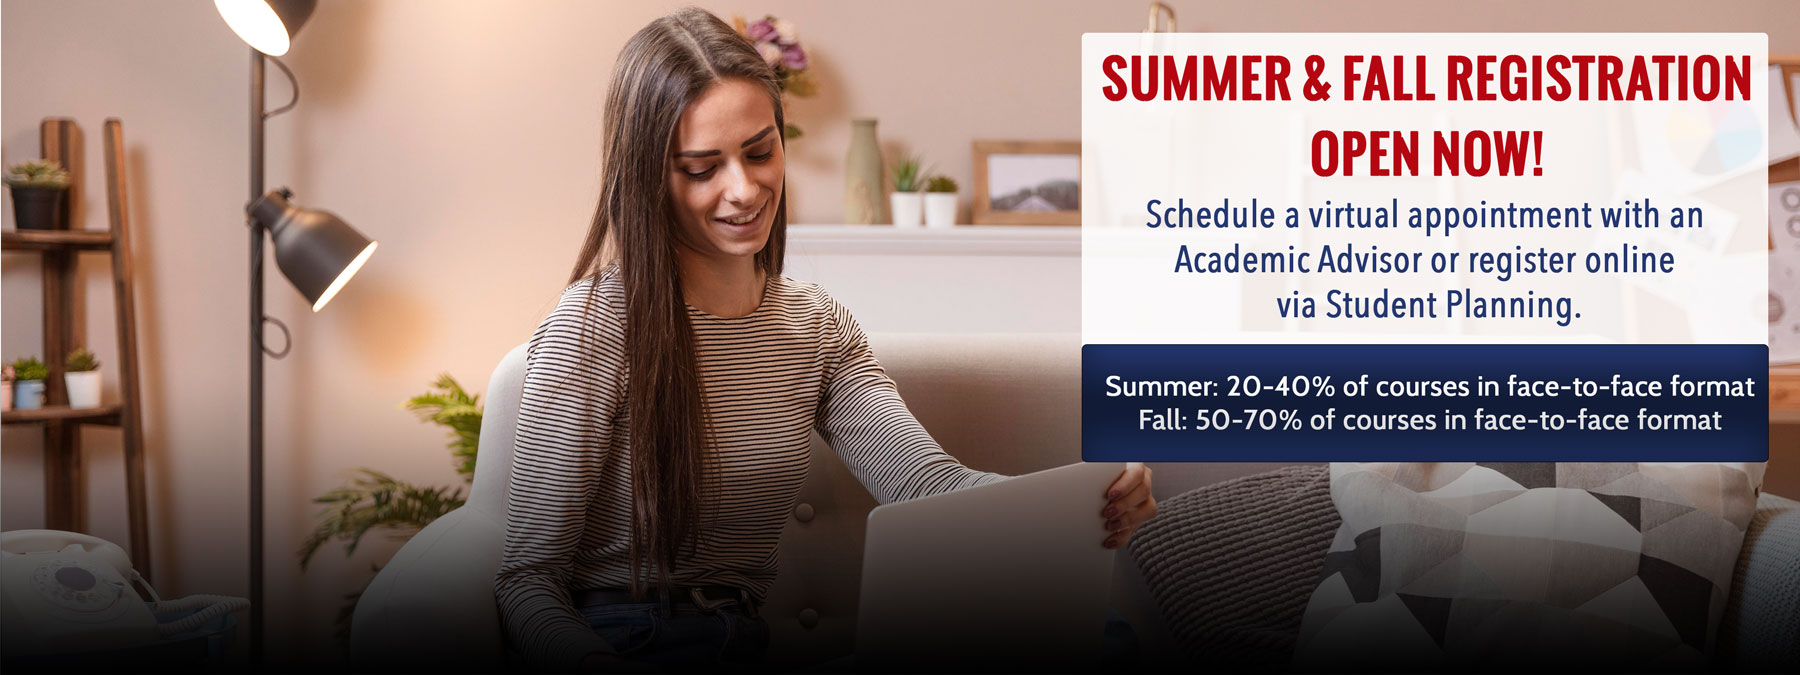 Female student sitting on a sofa smiling at the screen of an open laptop. Informative text: Summer and Fall Registration Opens Monday, April 5th with some face-to-face format courses in each semester.